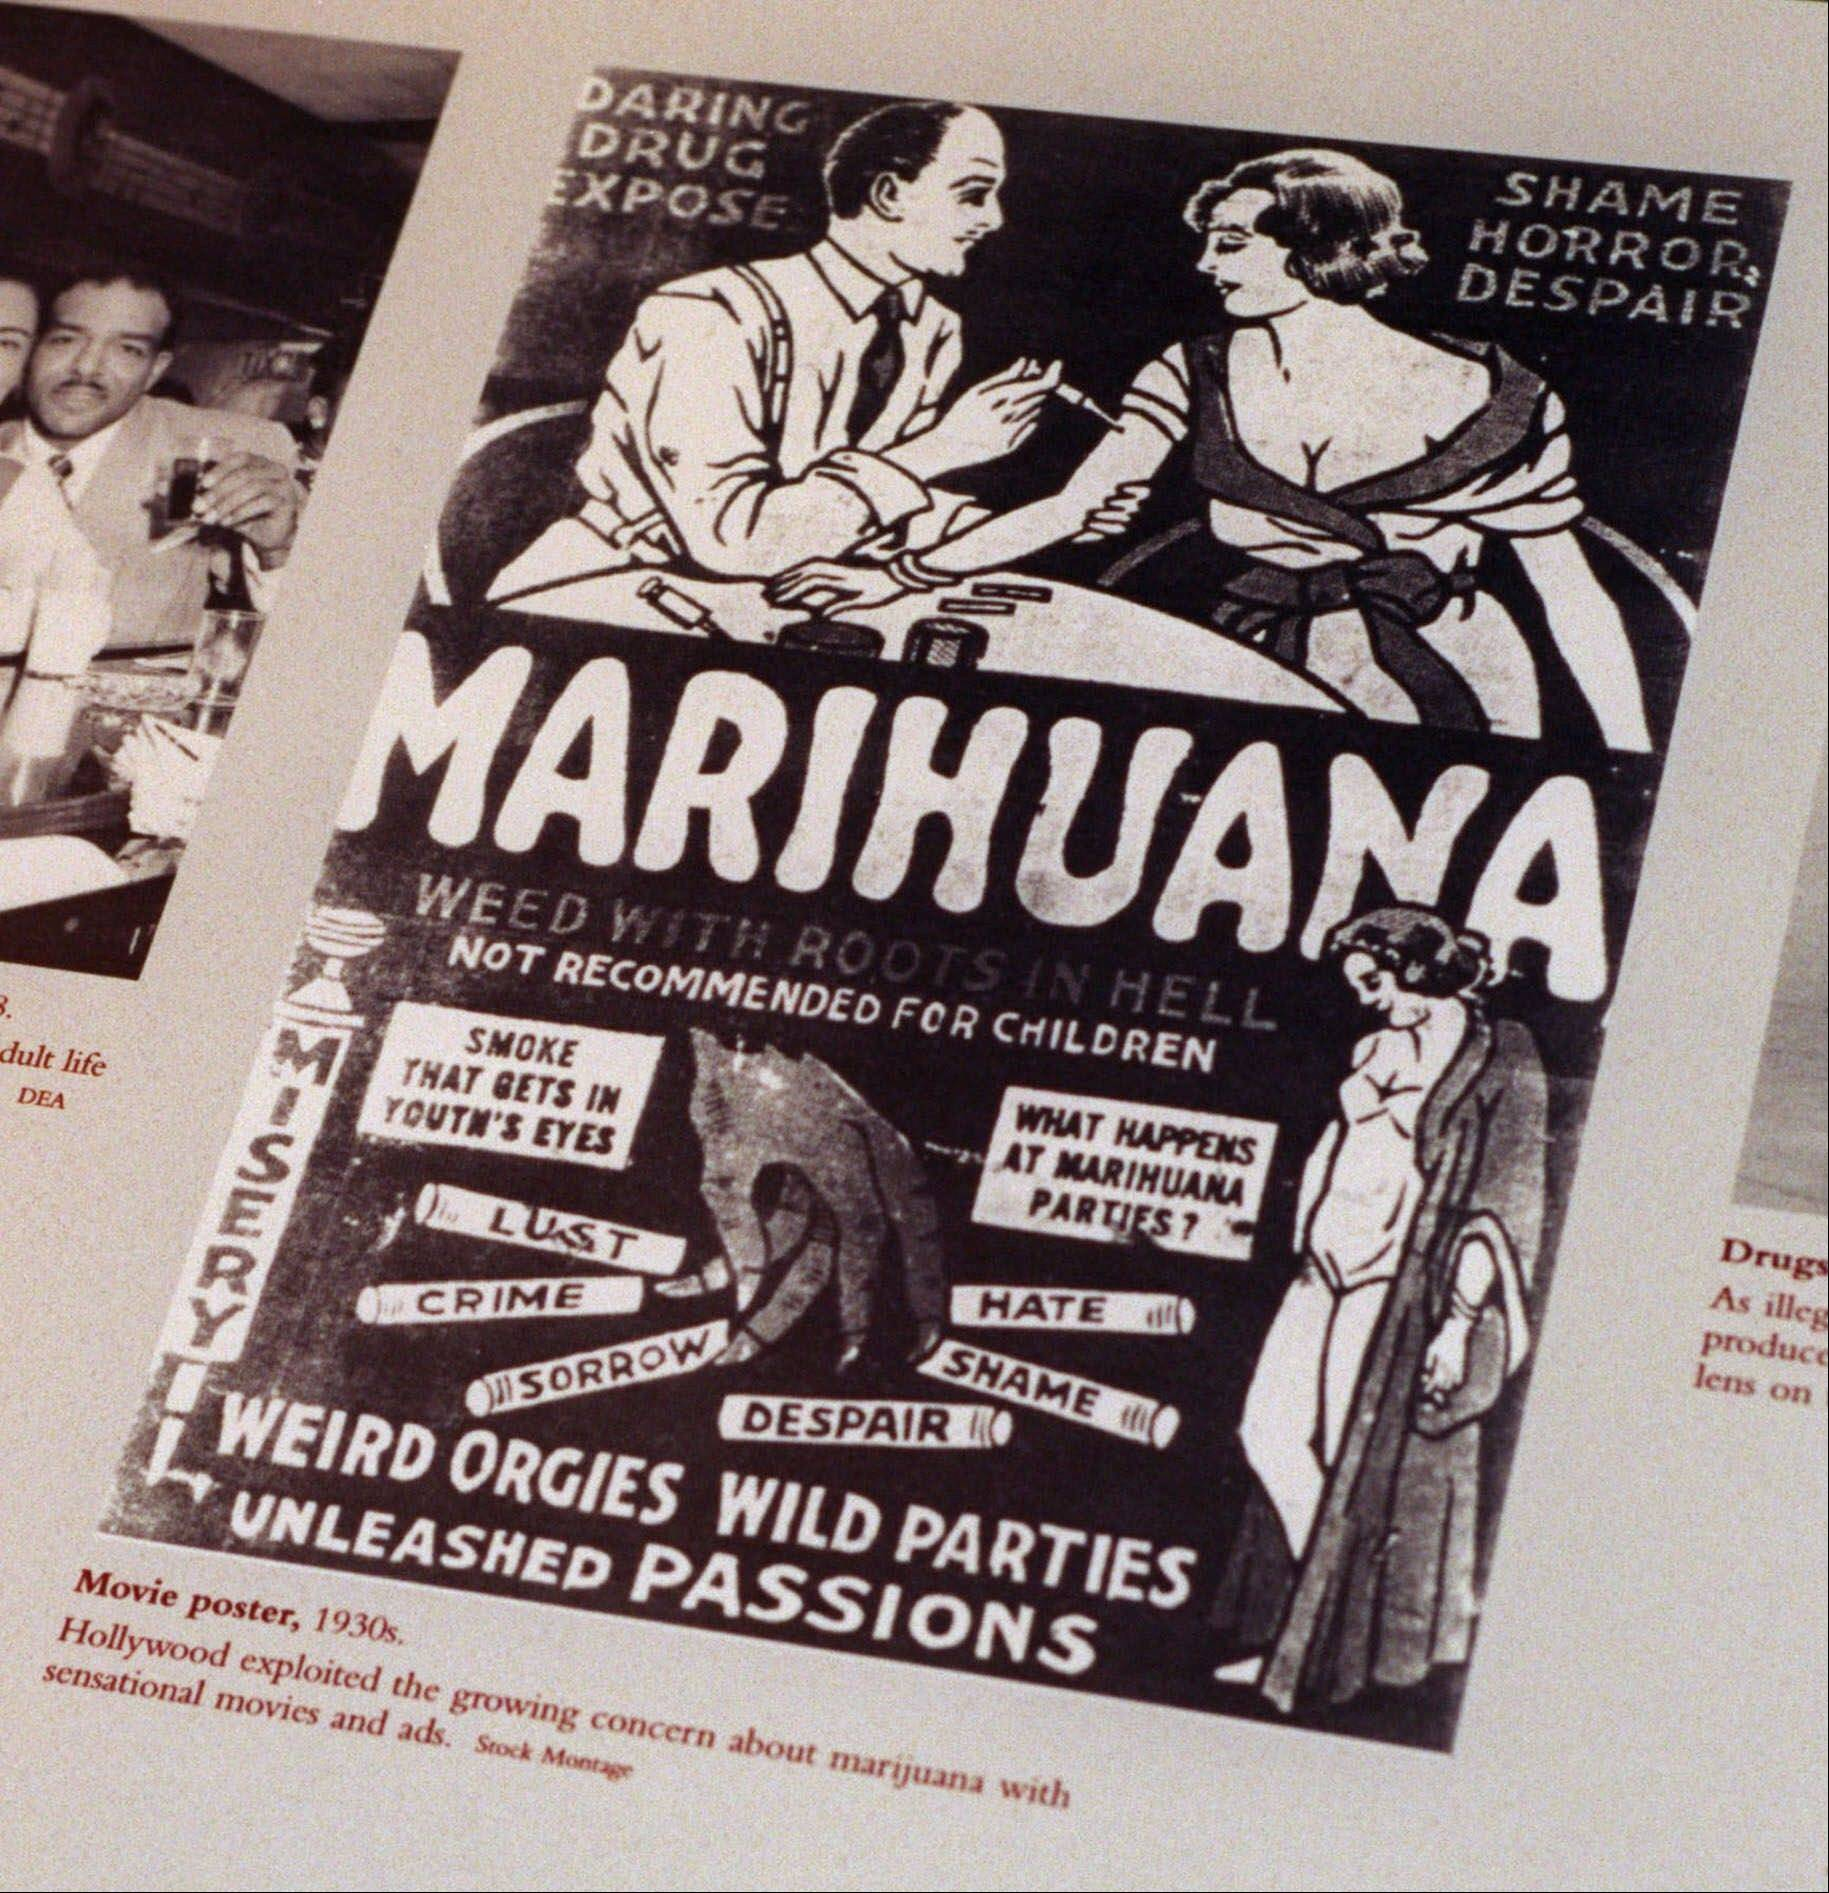 "A 1930s anti-marijuana movie poster was part of an exhibit at the DEA Museum and Visitors Center in Arlington, Va. After the repeal of alcohol prohibition in 1933, Harry Anslinger, who headed the Federal Bureau of Narcotics, turned his attention to pot. He told of sensational crimes reportedly committed by marijuana addicts. ""No one knows, when he places a marijuana cigarette to his lips, whether he will become a philosopher, a joyous reveler in a musical heaven, a mad insensate, a calm philosopher, or a murderer,"" he wrote in ""Marijuana: Assassin of Youth,"" in 1937."